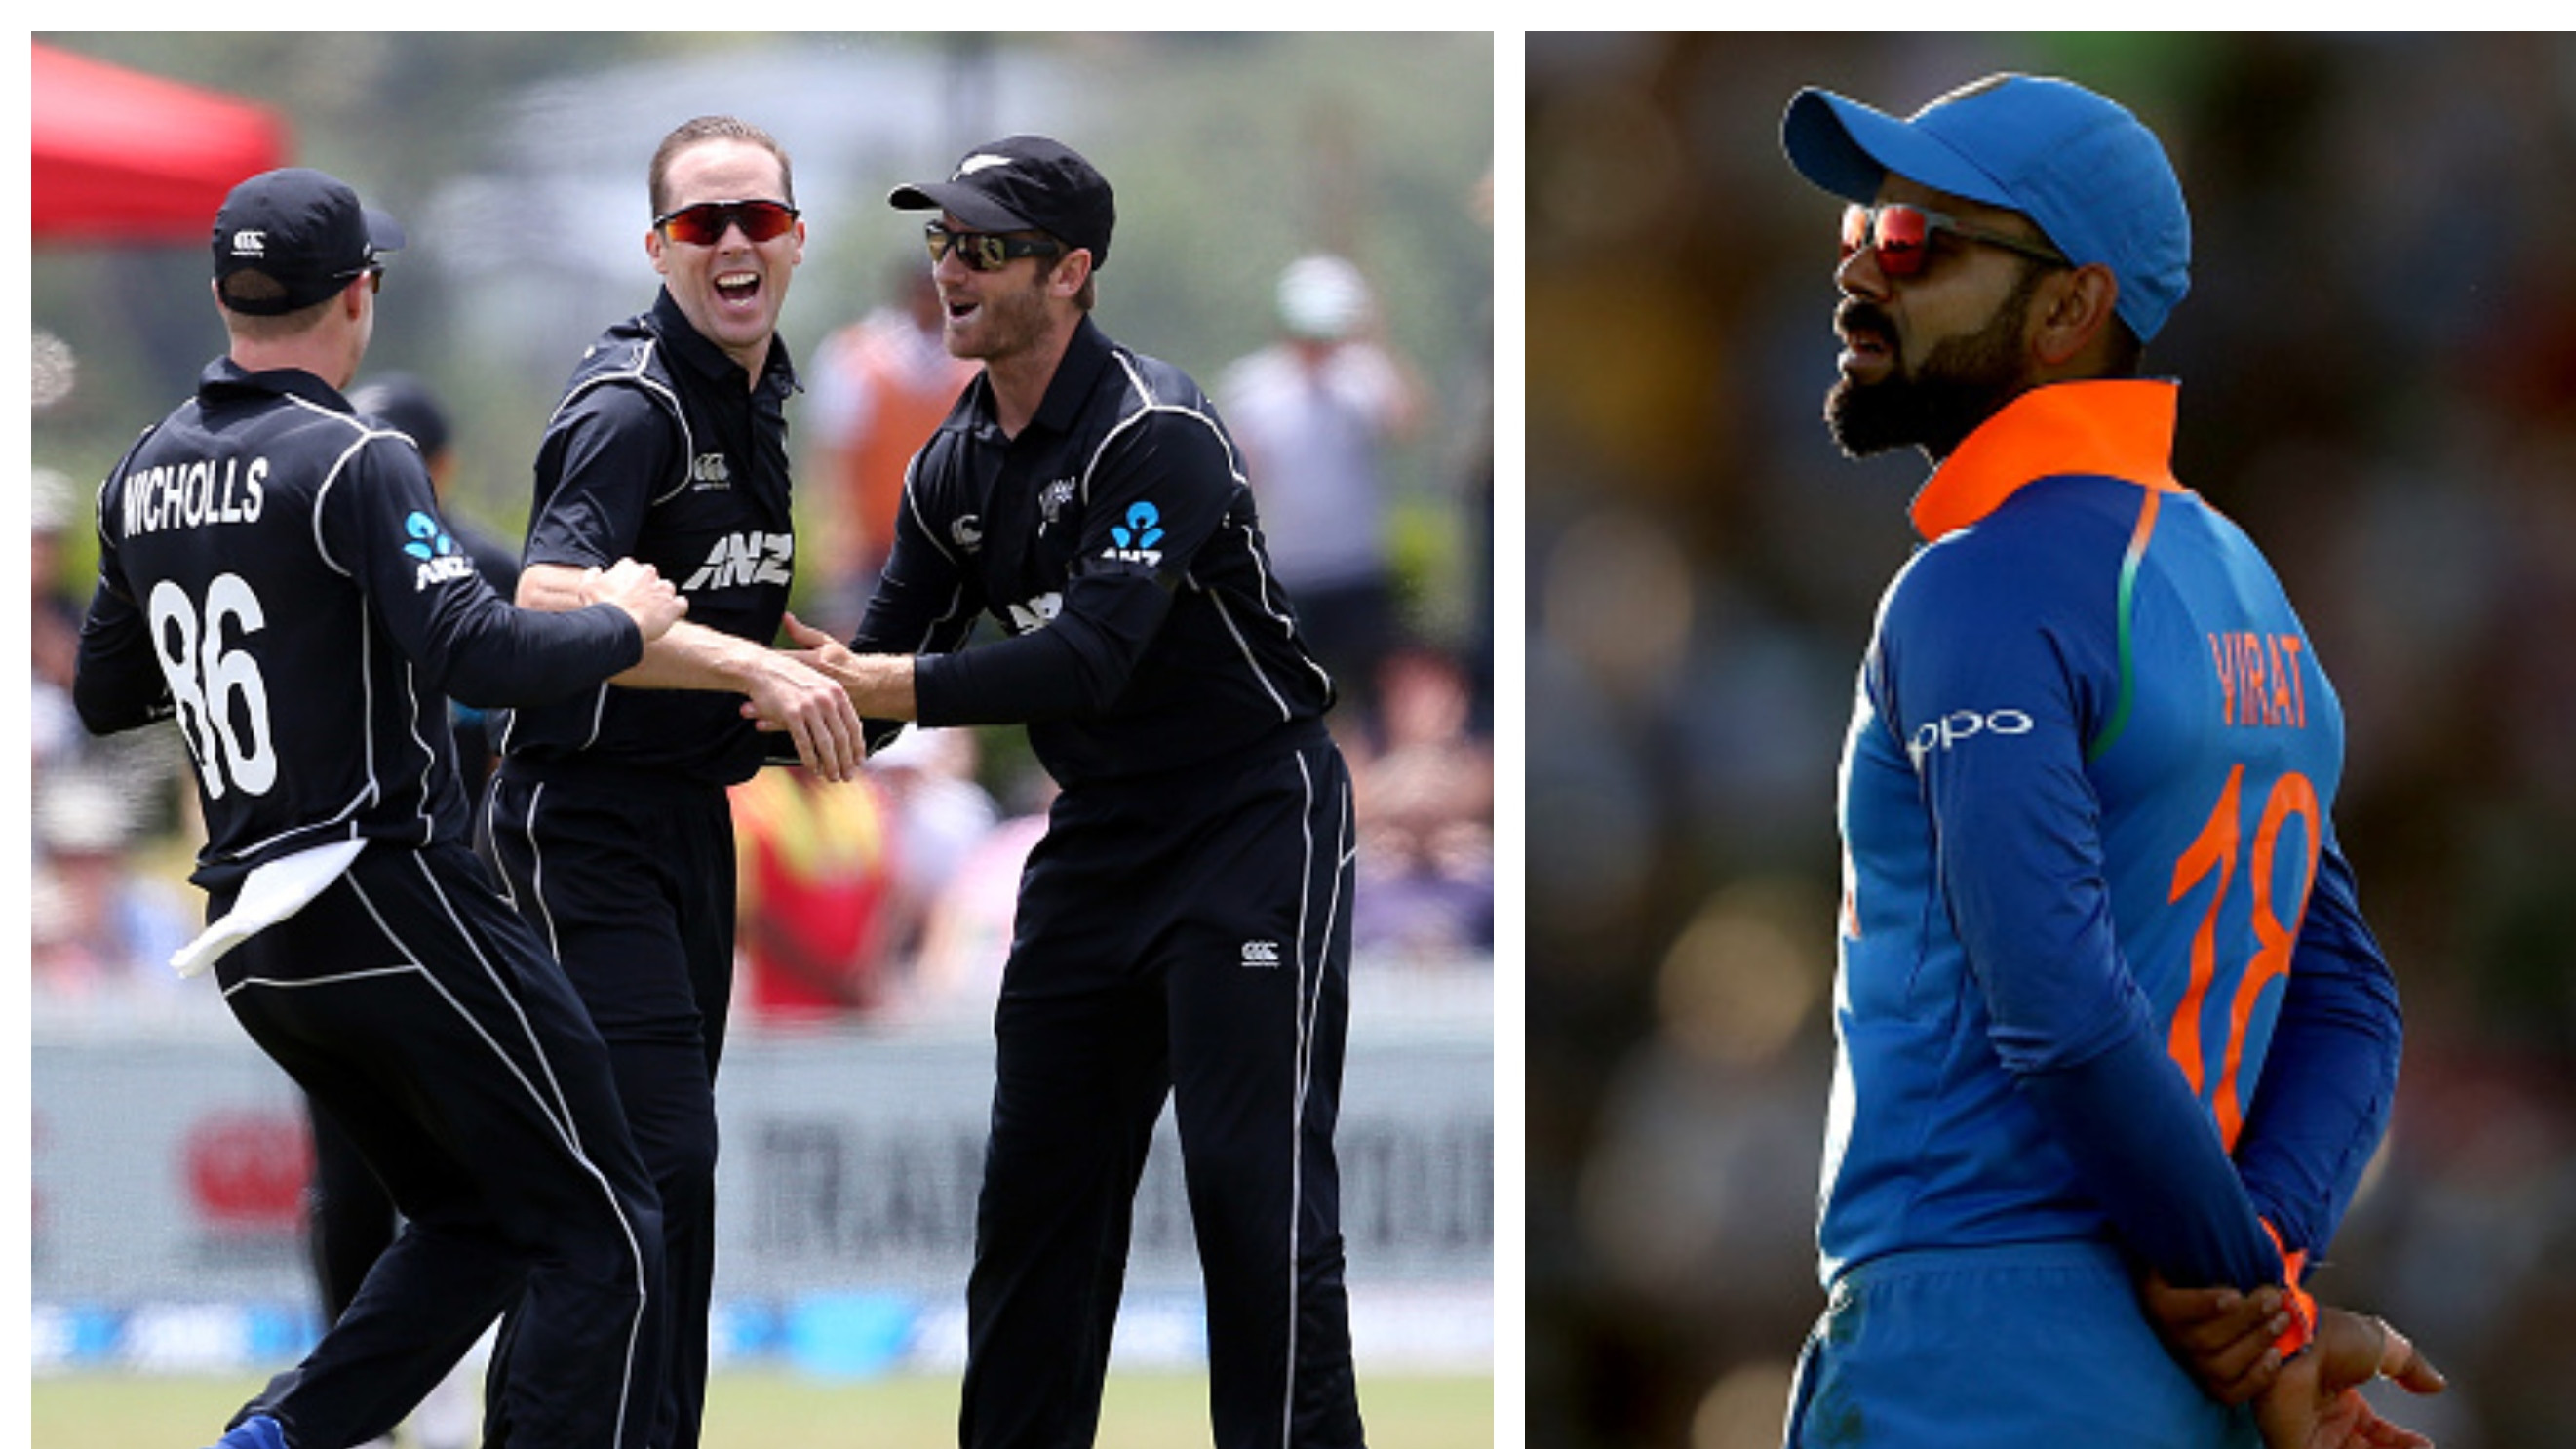 NZ v IND 2019: Todd Astle disappointed on missing the chance to bowl to Kohli